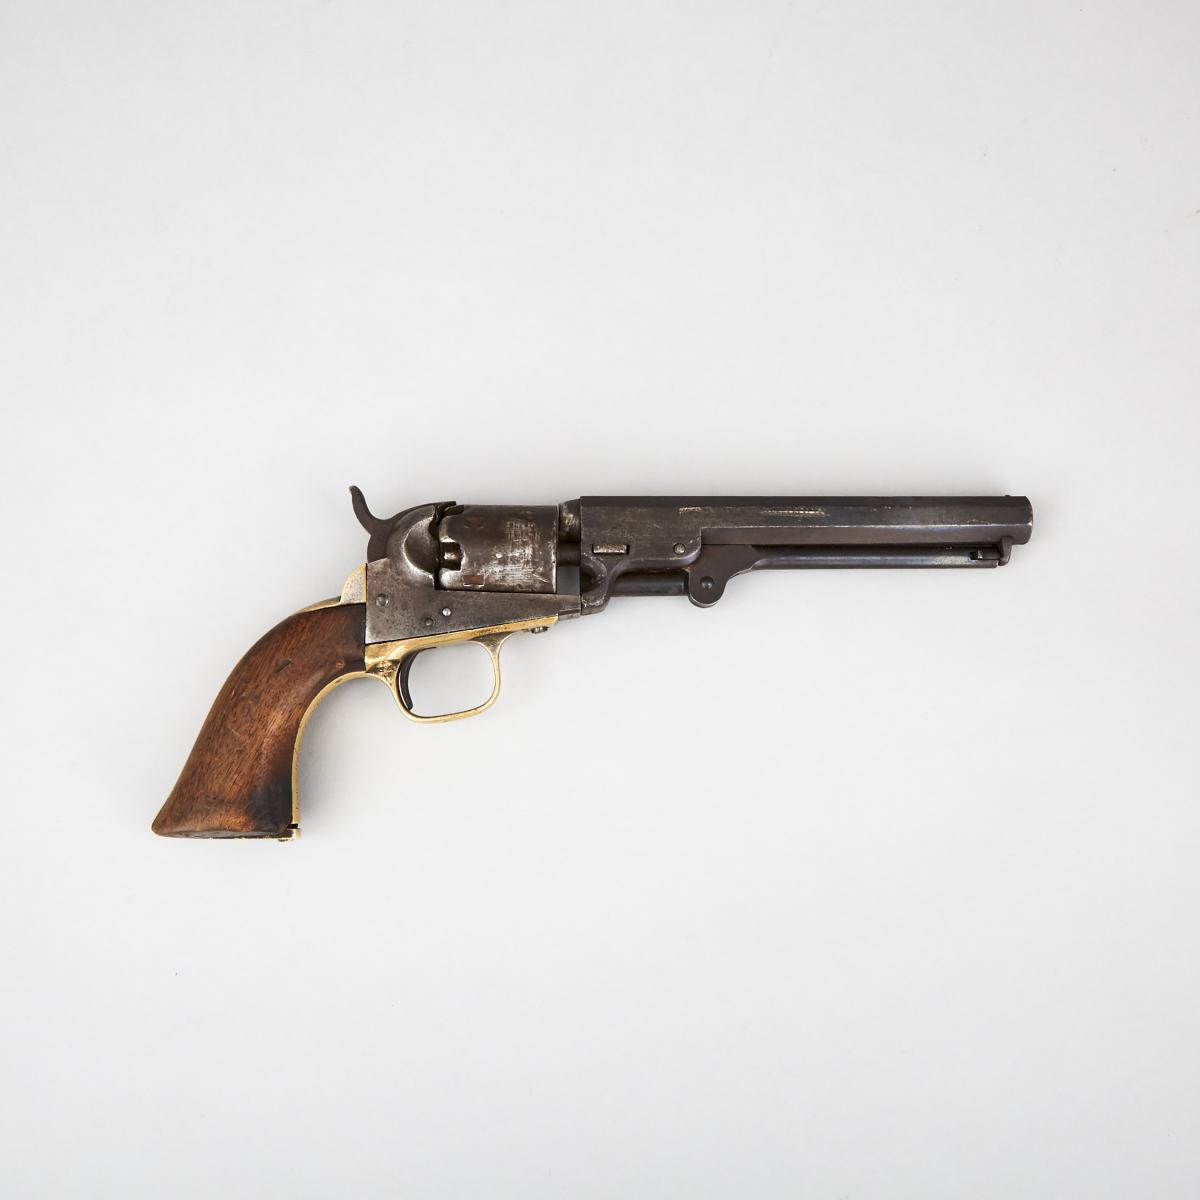 Colt Model 1851 'The Dandy First' National Guard Presentation Navy Revolver, 1863 - Image 2 of 5